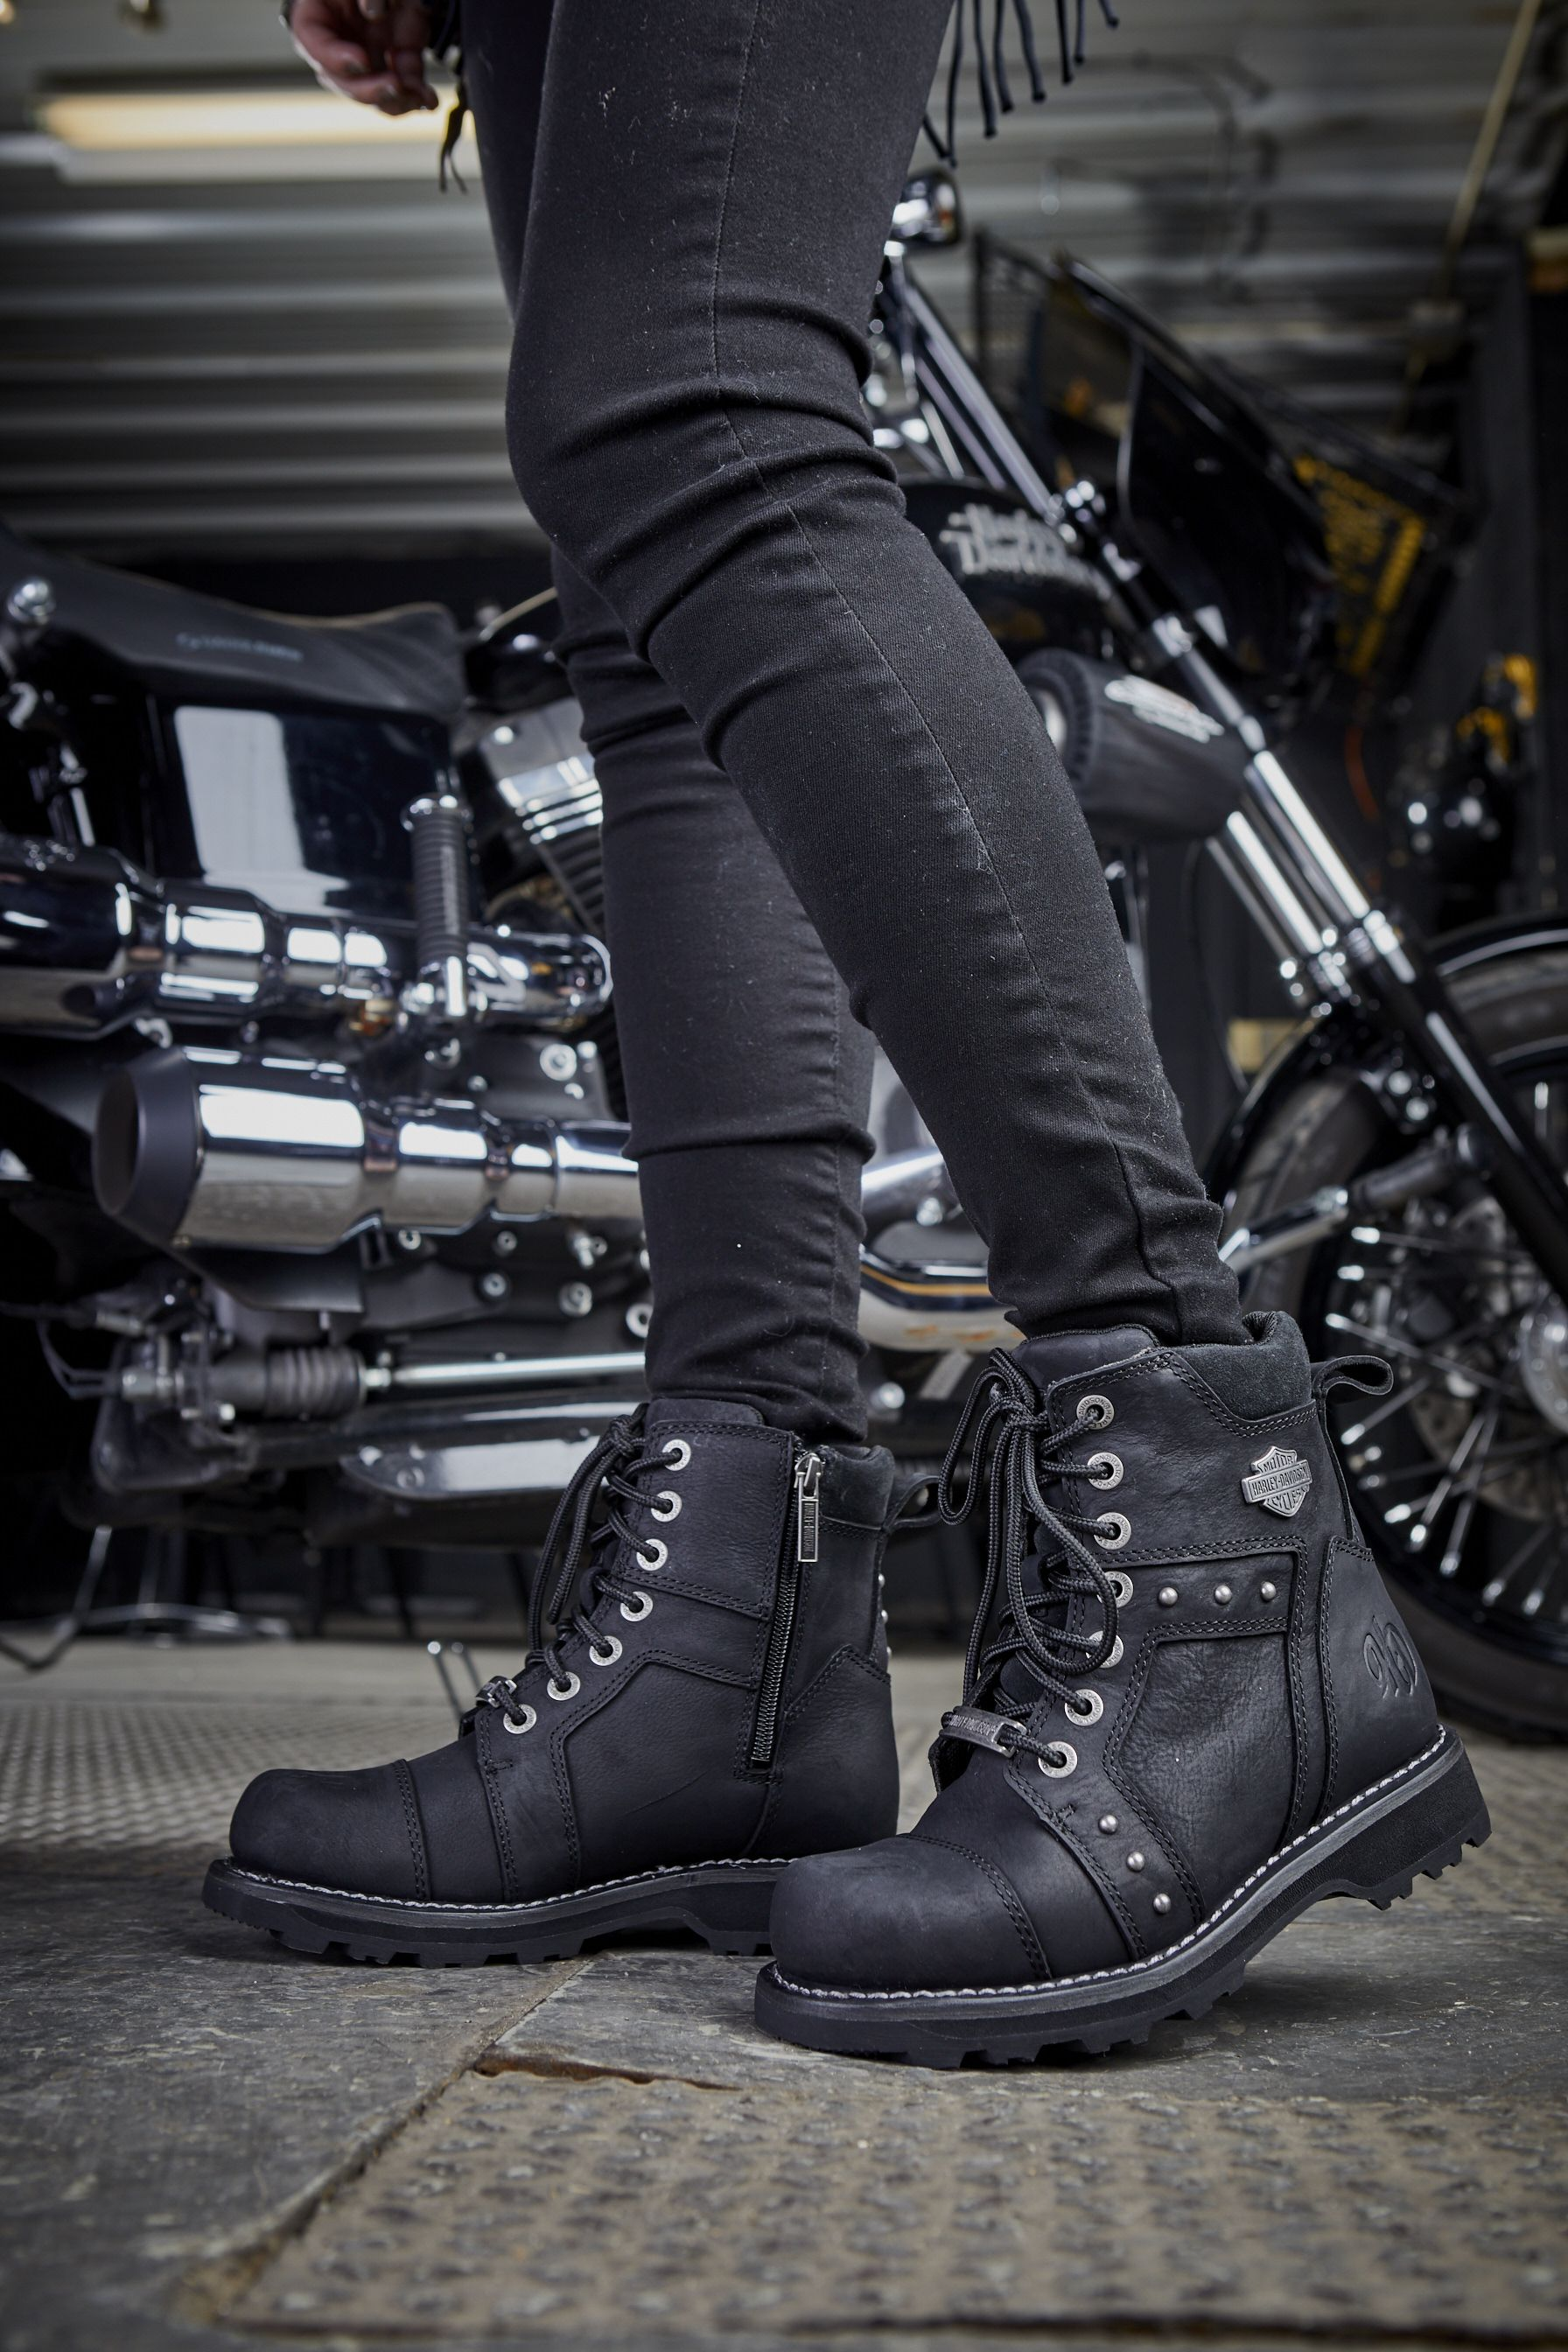 Women's Oakleigh Boot | Women's motorcycle boots, Womens motorcycle  fashion, Leather motorcycle jacket outfit